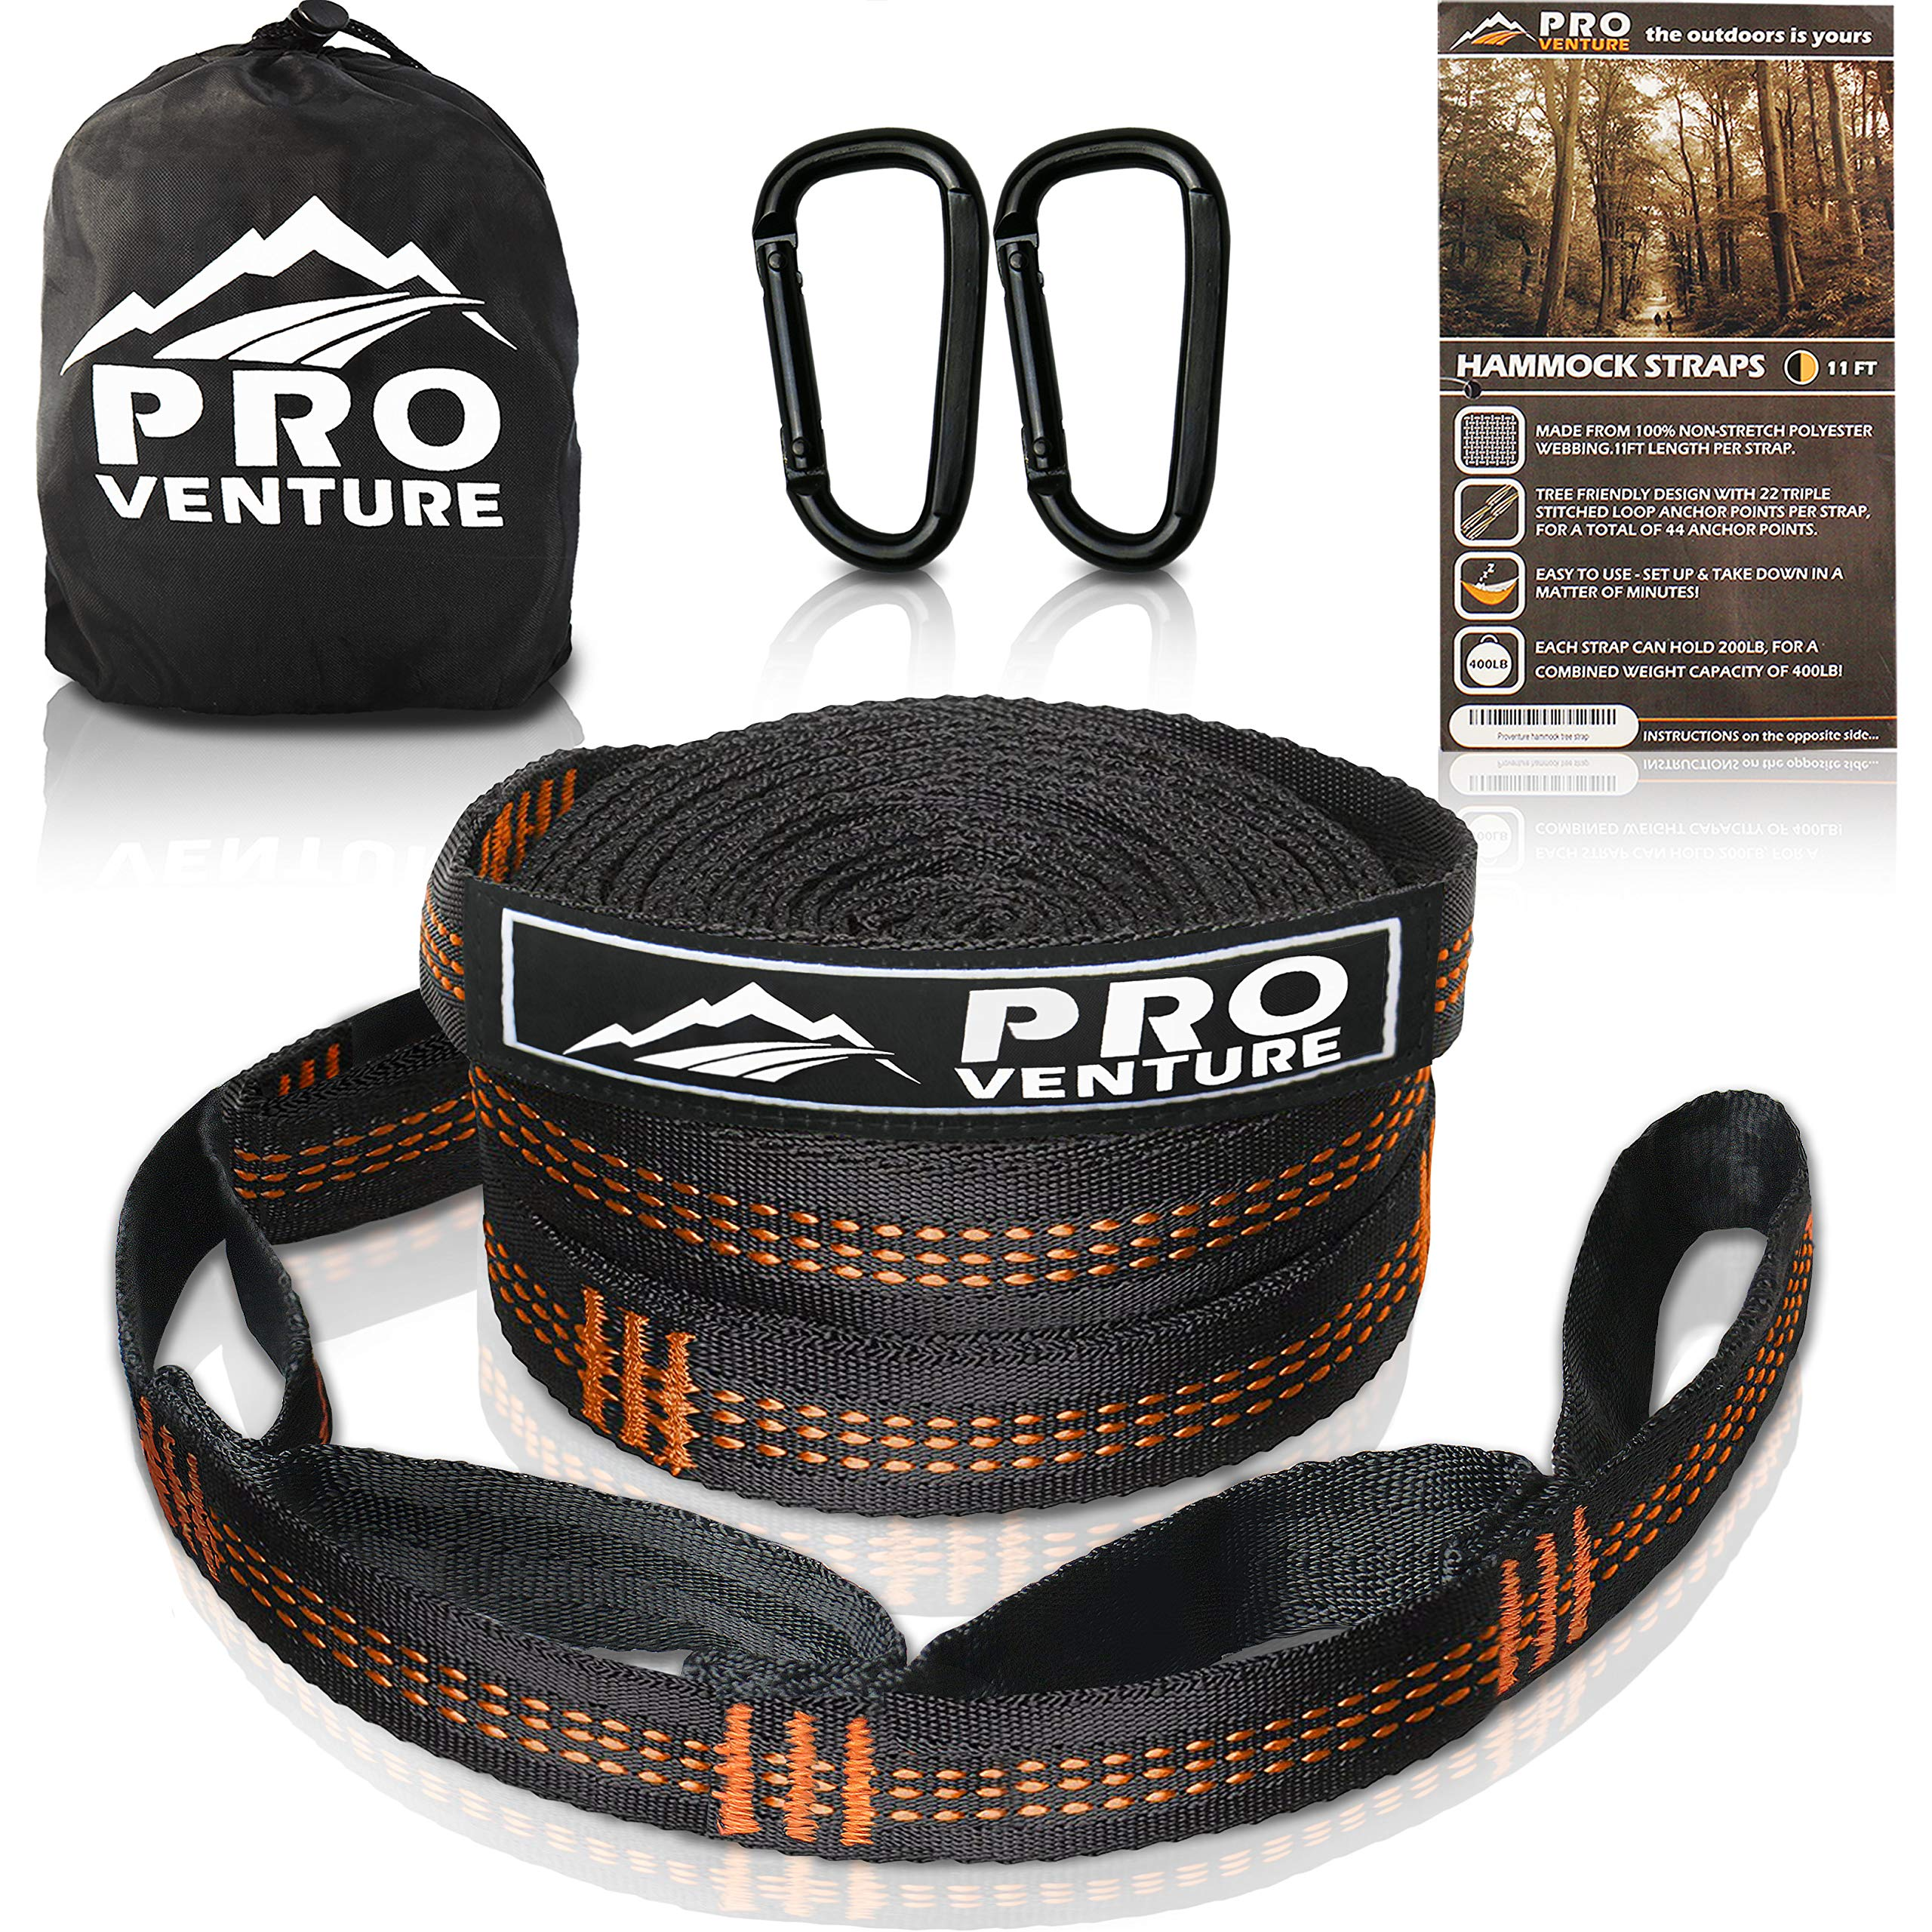 Pro Hammock Tree Straps with CARABINERS - 11 Feet, Adjustable 44 Loops, 400LB Rated (1200LB Tested), Easy Set up, Heavy Duty But Lightweight. by Pro Venture